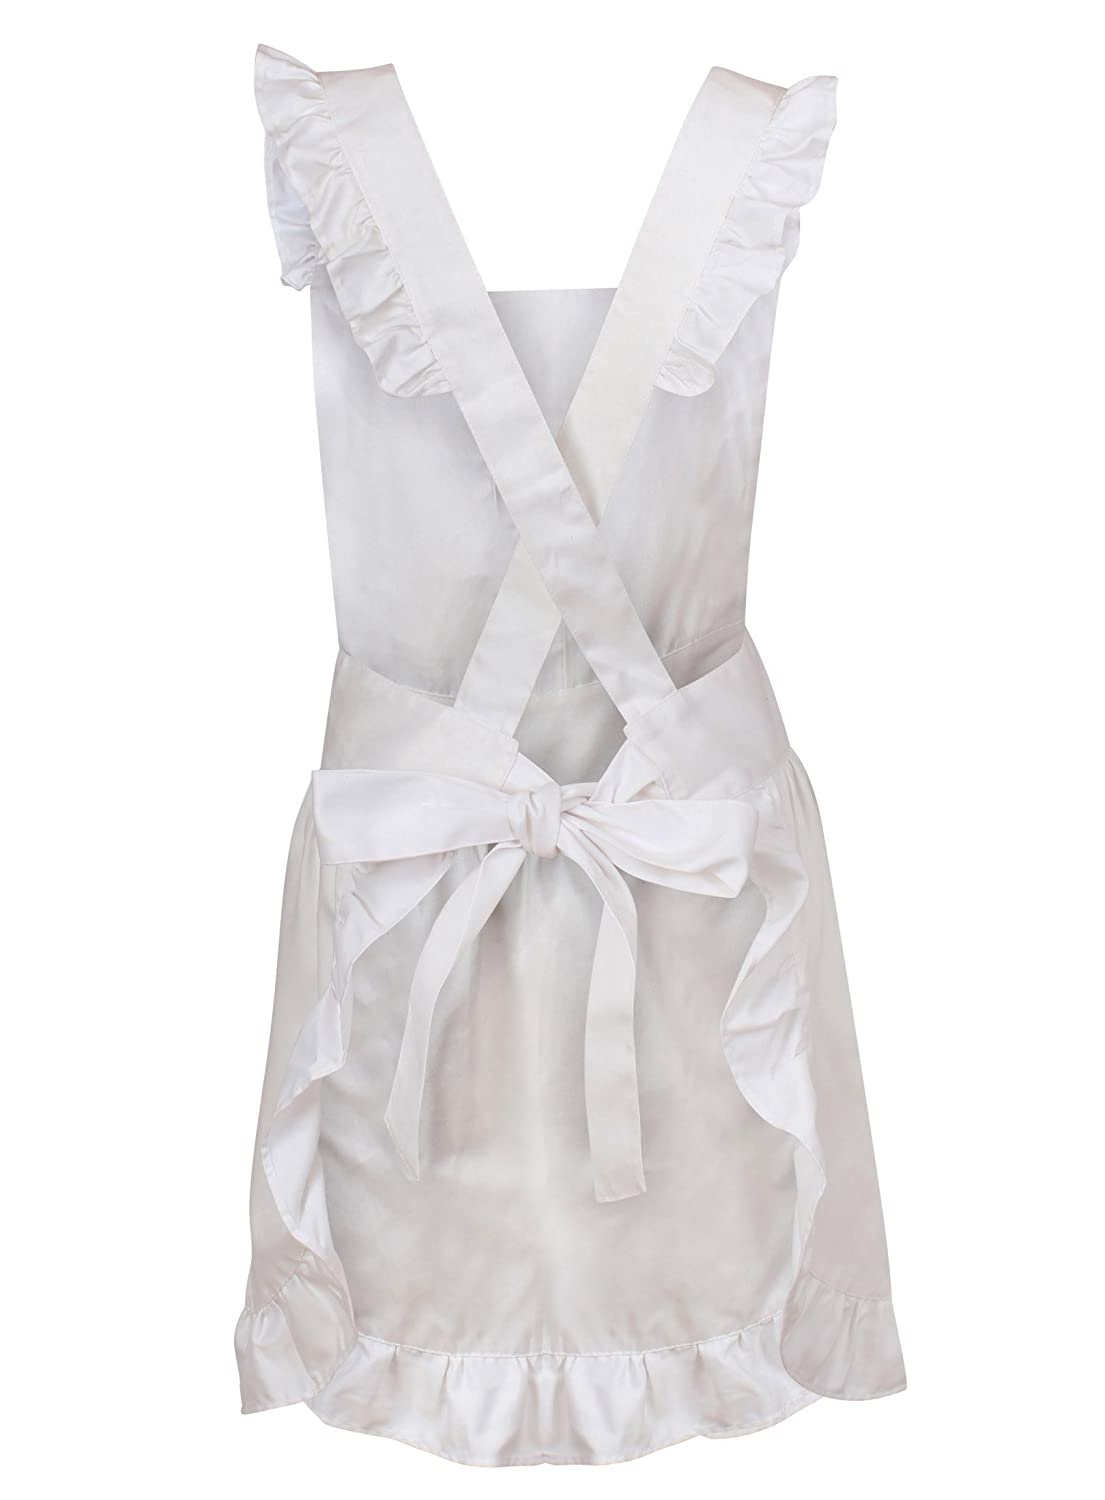 White apron pinafore - White Frilly Pinafore Apron For Baking Victorian Waitress Downton Maid Costume With Mop Cap Attractive Design With Adjustable Sizing Quality Easy Care